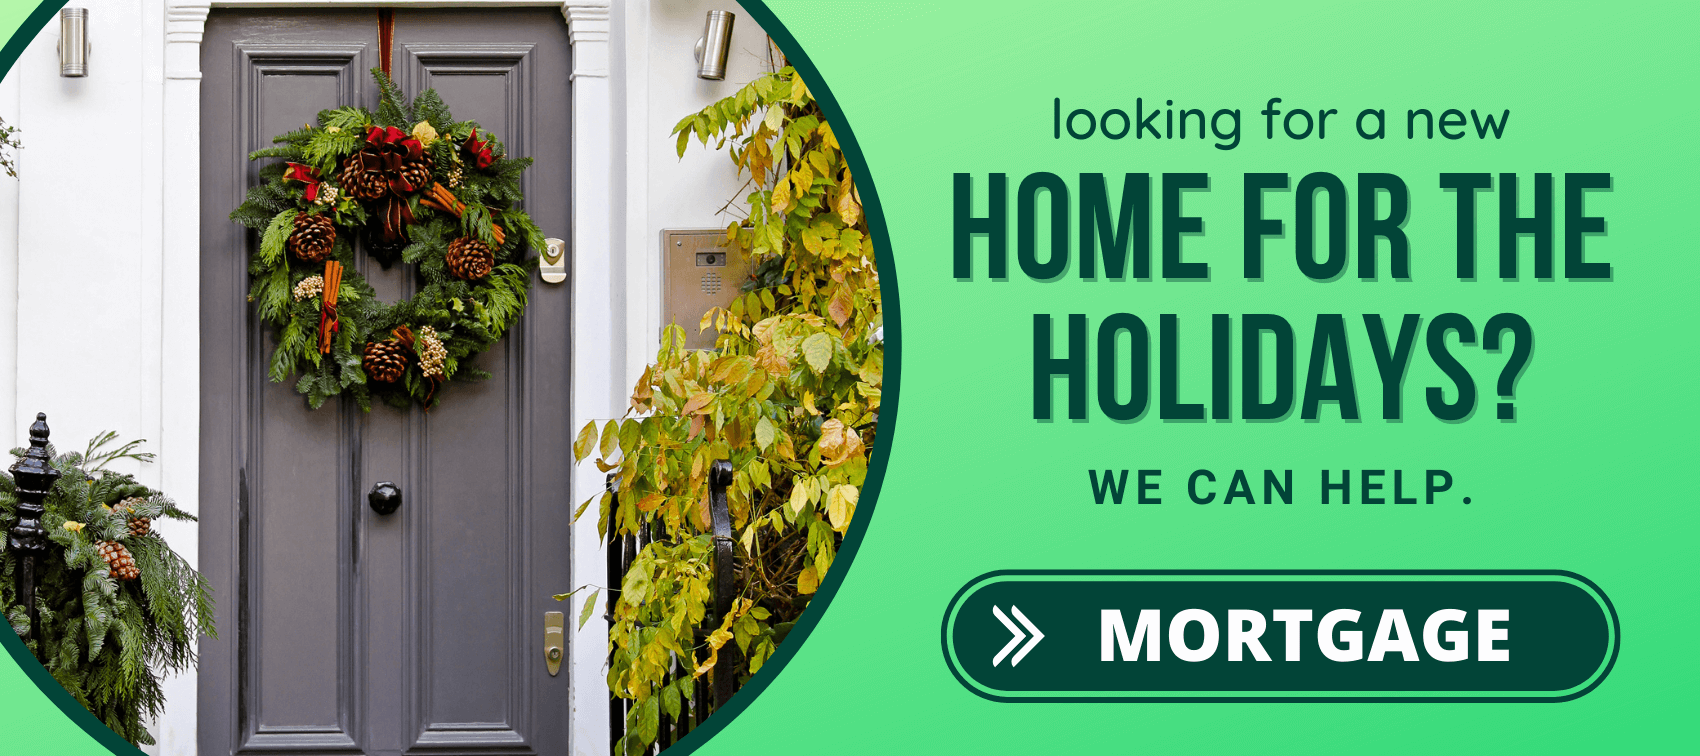 Looking for a new home for the holidays? Click here to learn about our mortgages.